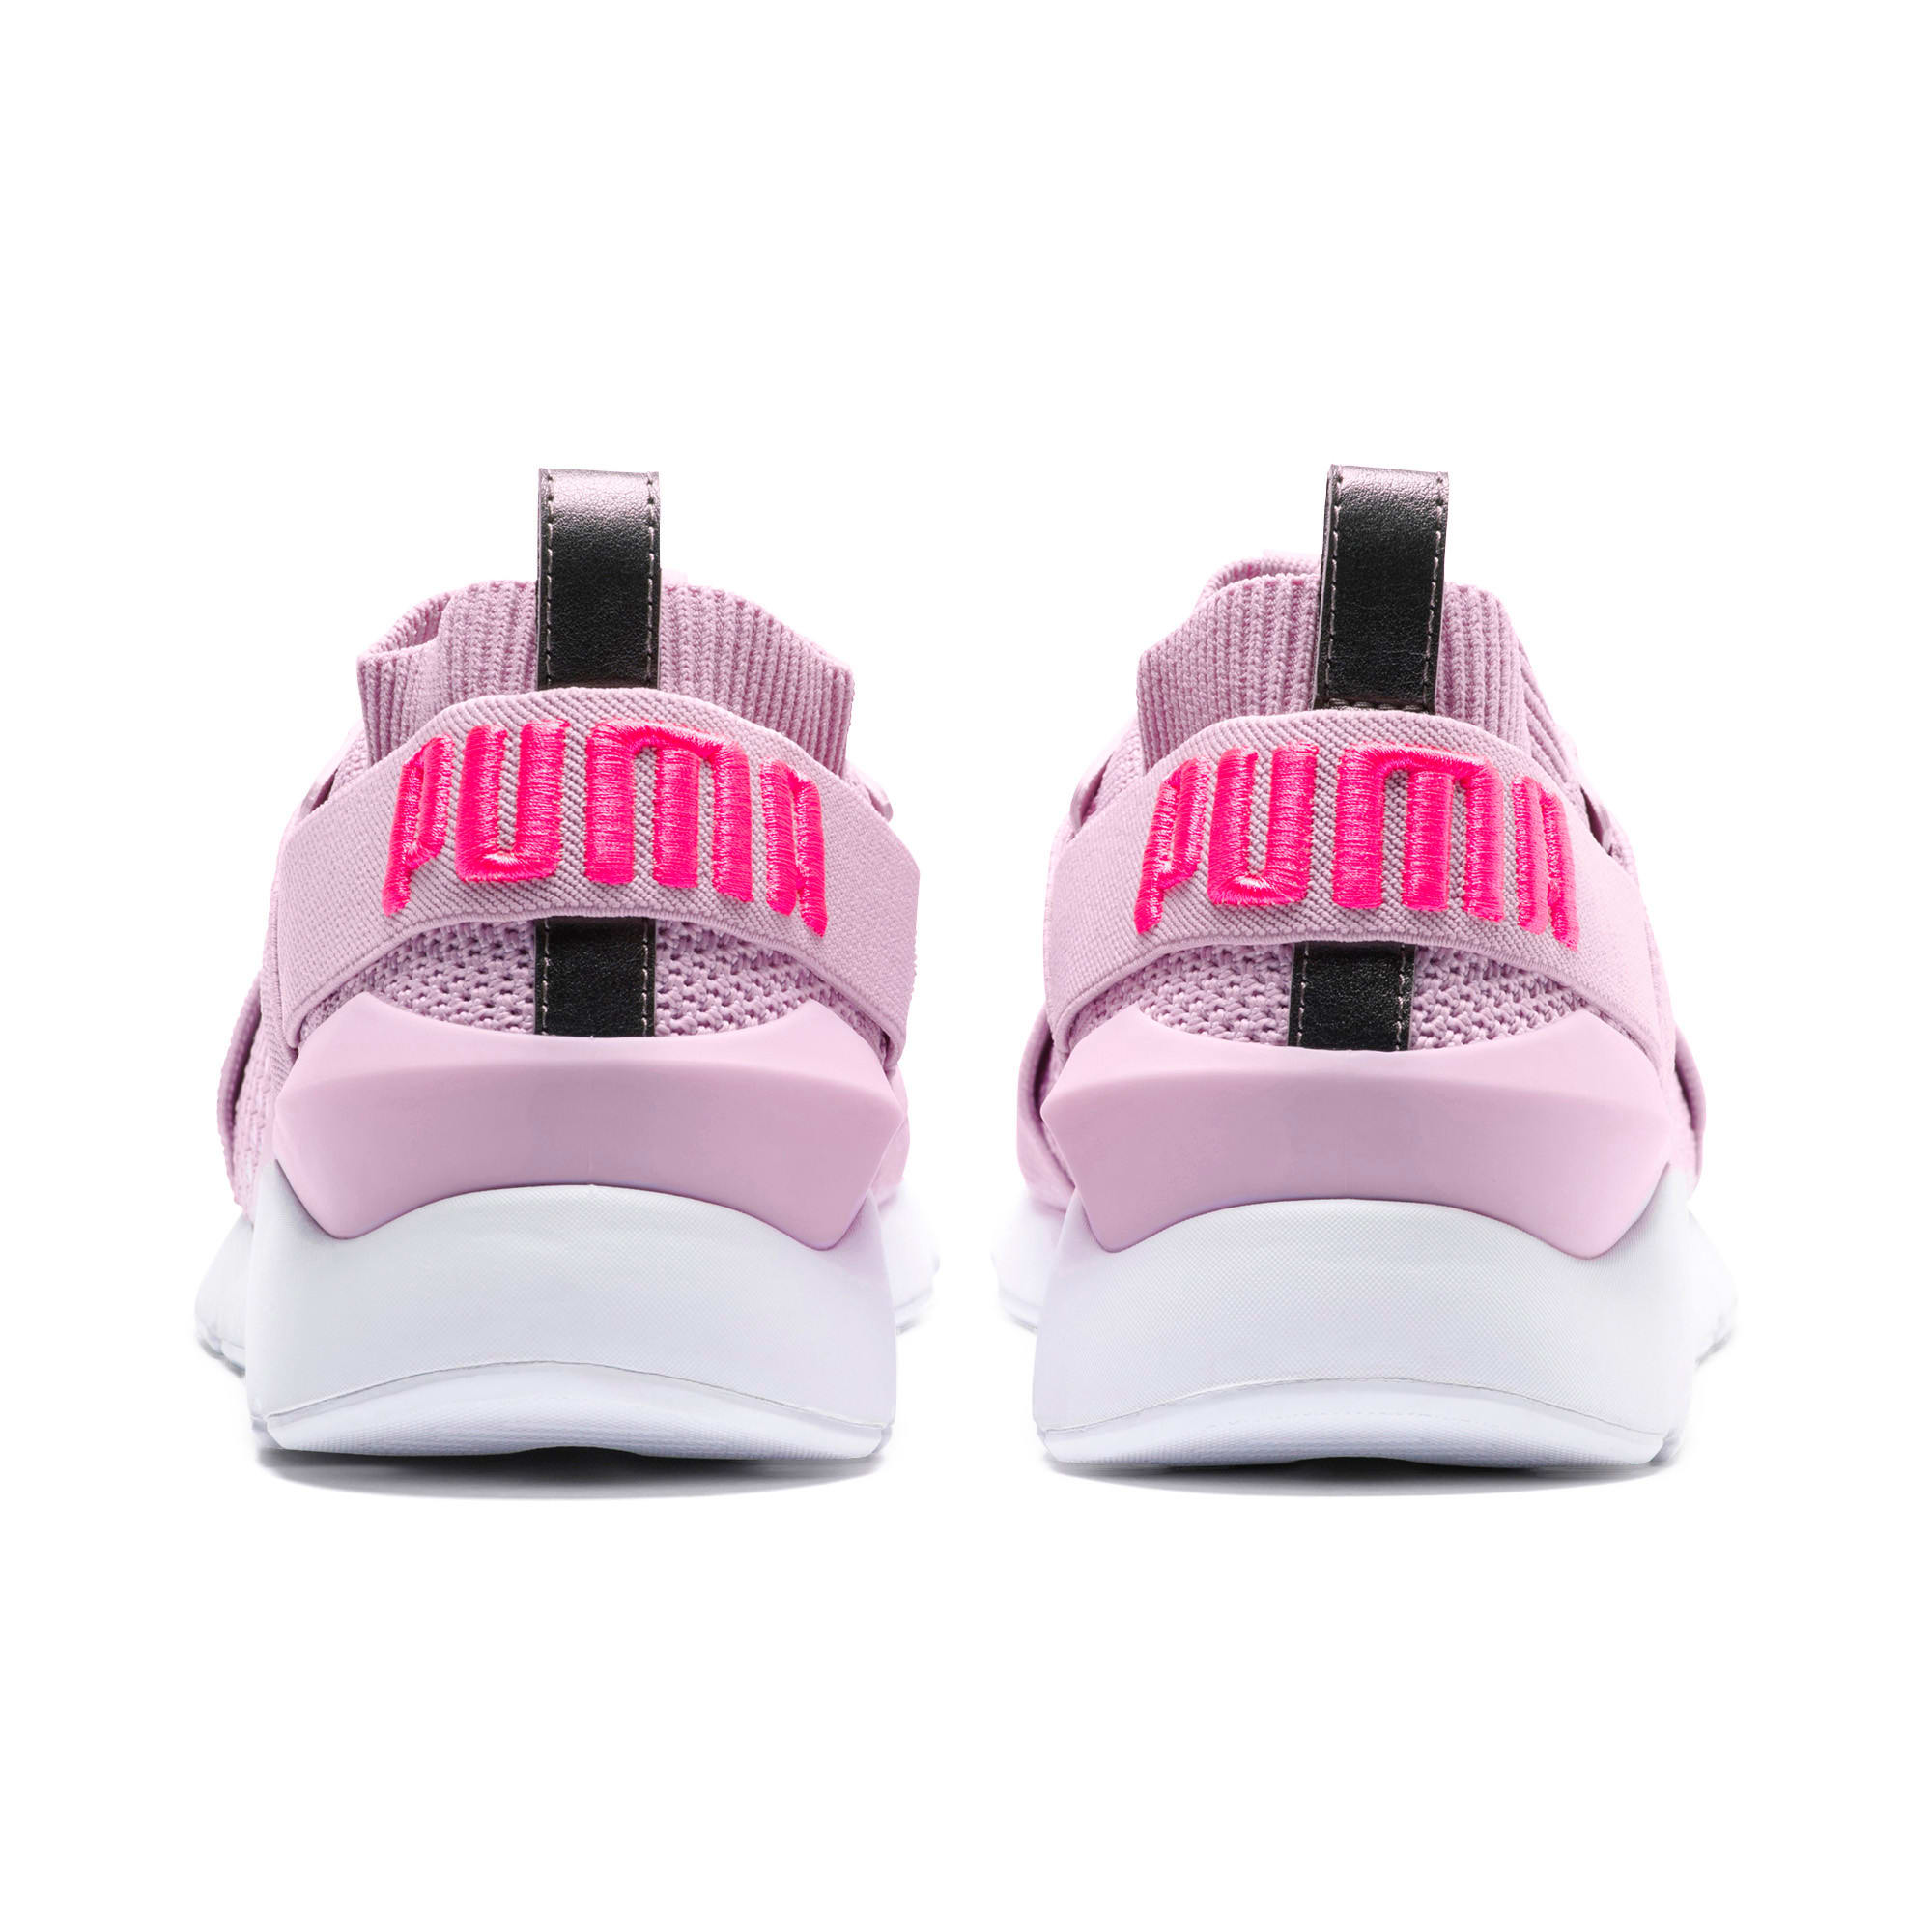 Thumbnail 3 of Muse evoKNIT Women's Trainers, Winsome Orchid, medium-IND